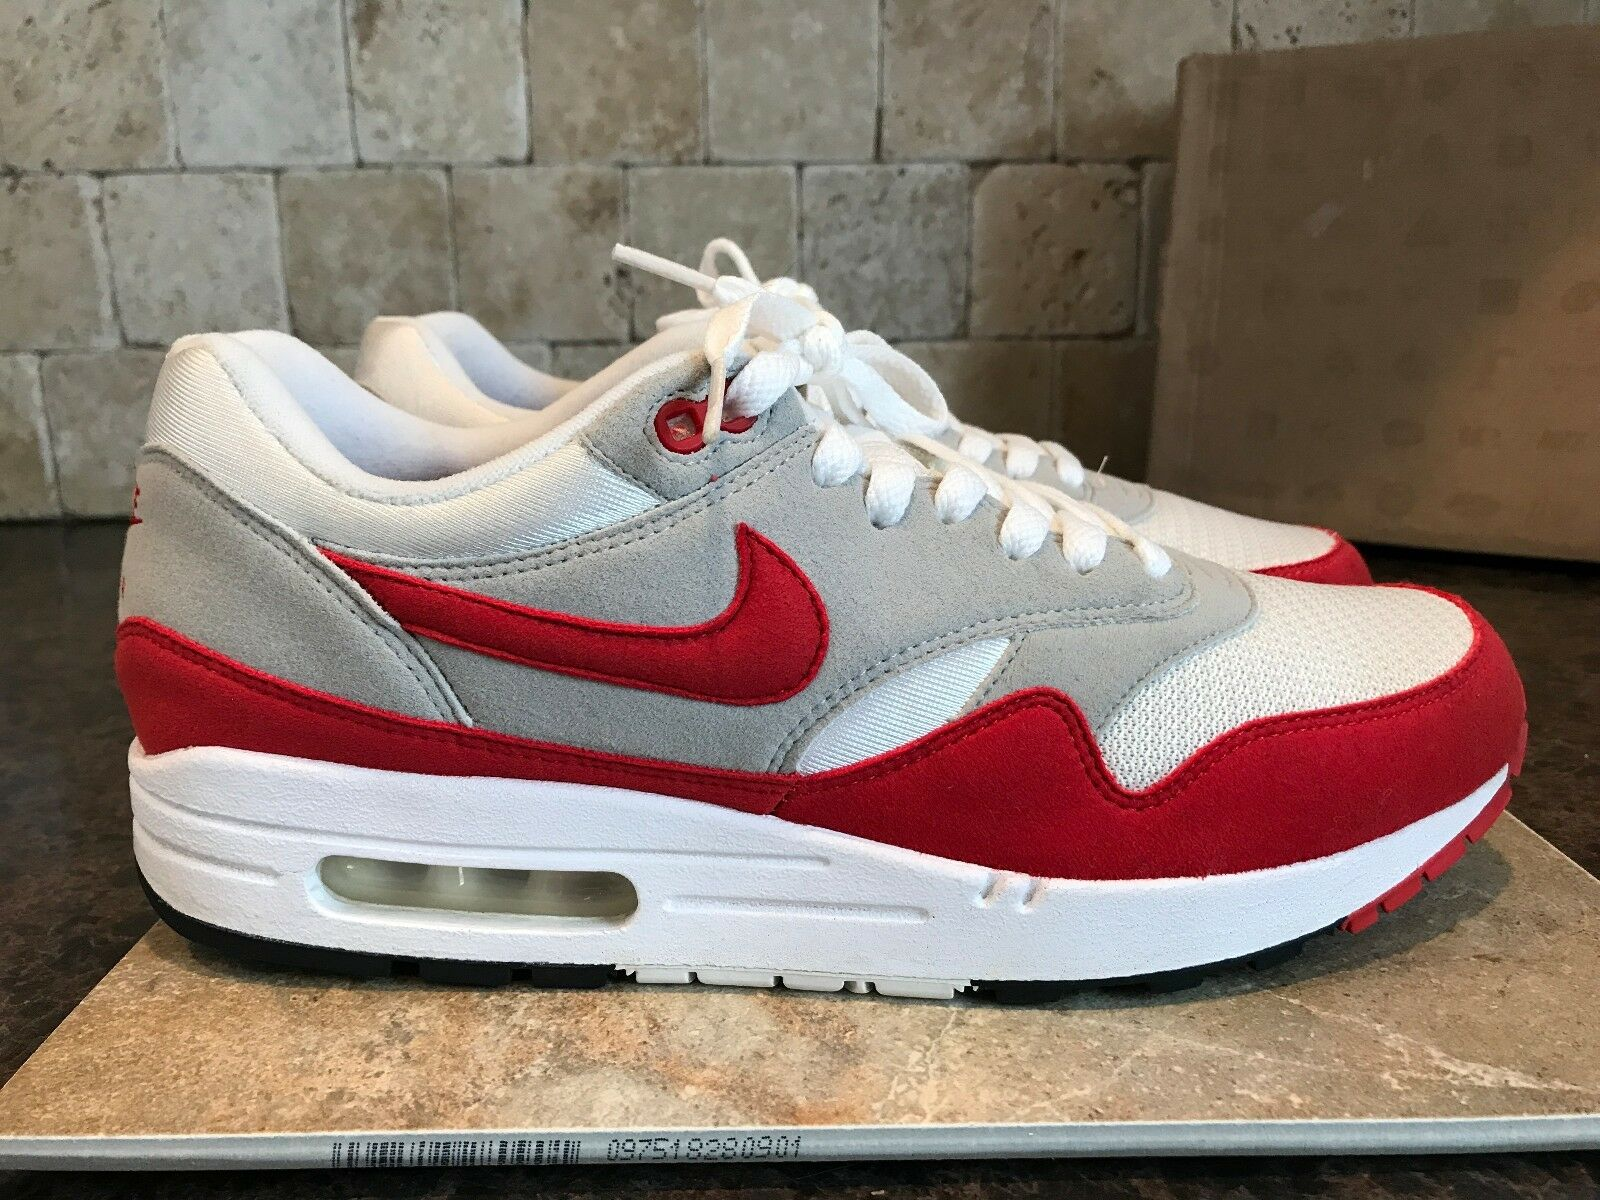 RARE NIKE 2018 AIR MAX 1 QS  MEN'S SHOES SIZE 9.5 378830 161 SPORT RED Seasonal clearance sale